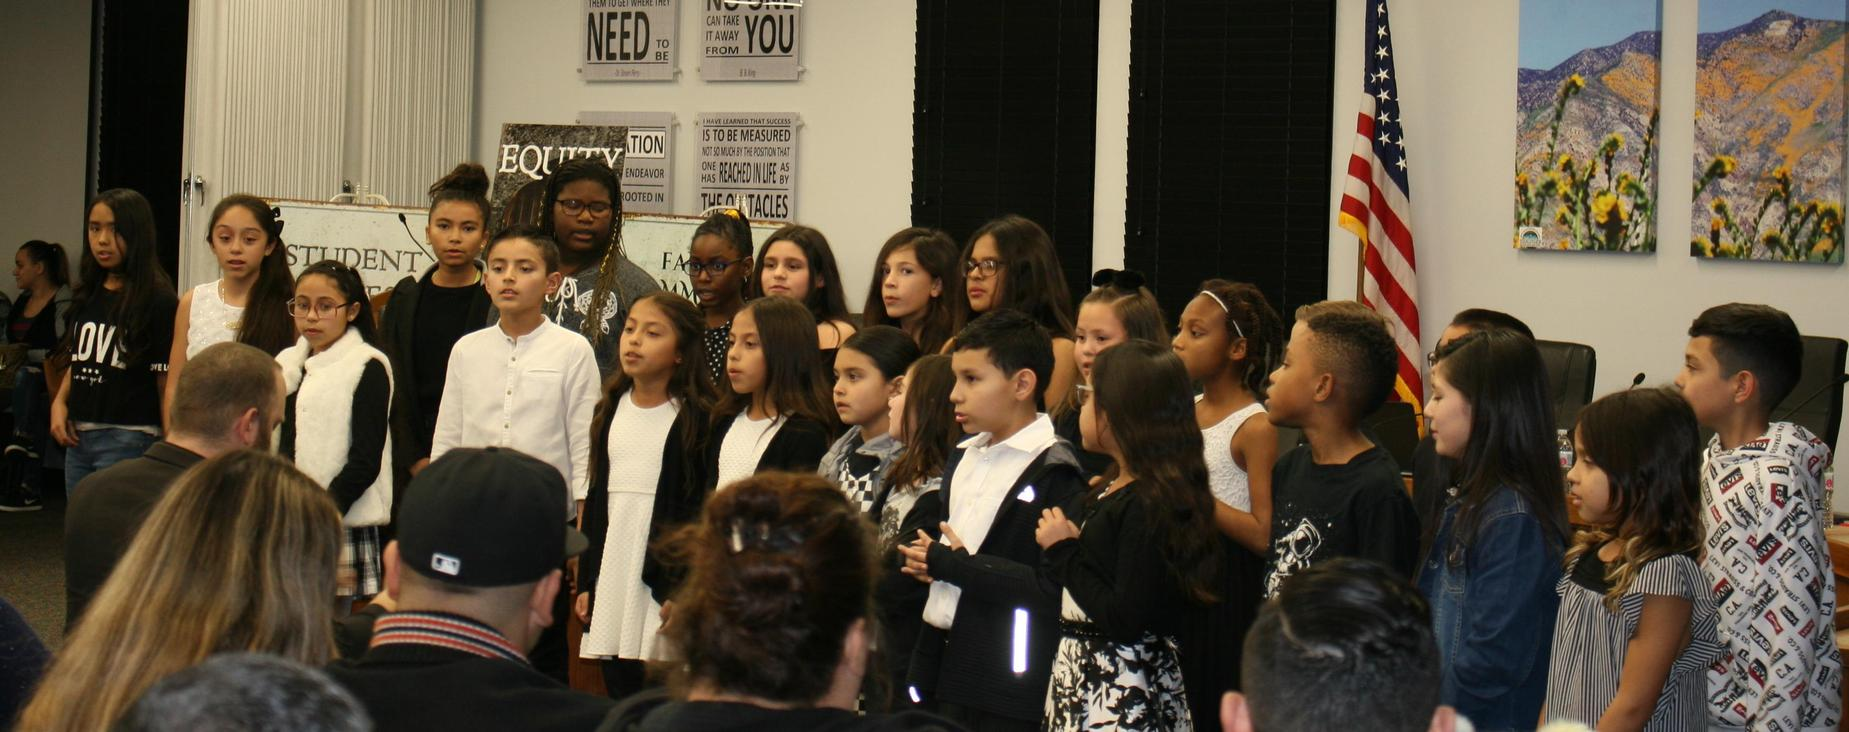 Choir from Megan Cope Elementary performed at the January Board of Trustees meeting